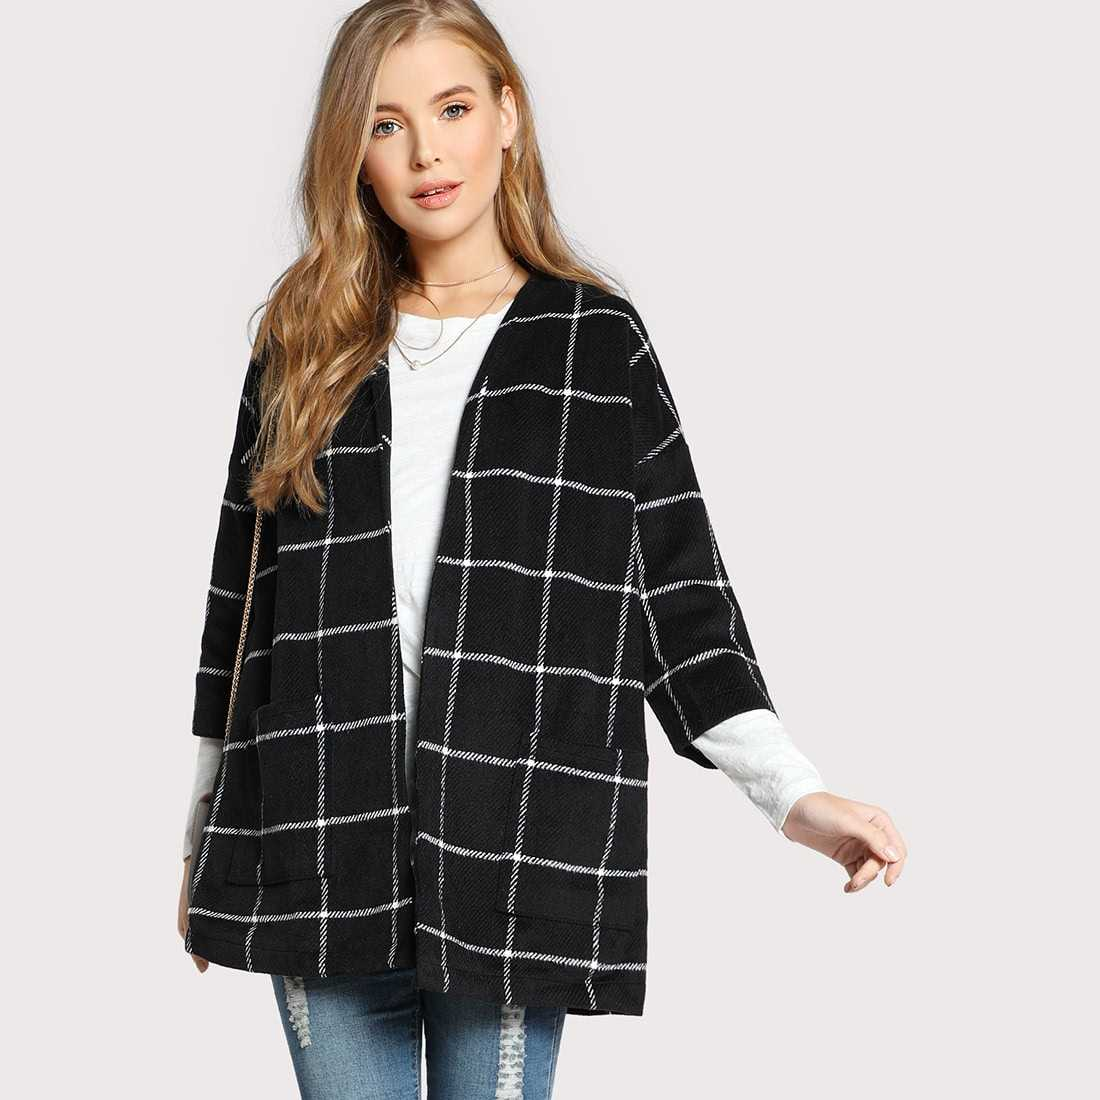 Black Grid Collarless Open Front Coat With Pocket in Black by ROMWE on GOOFASH